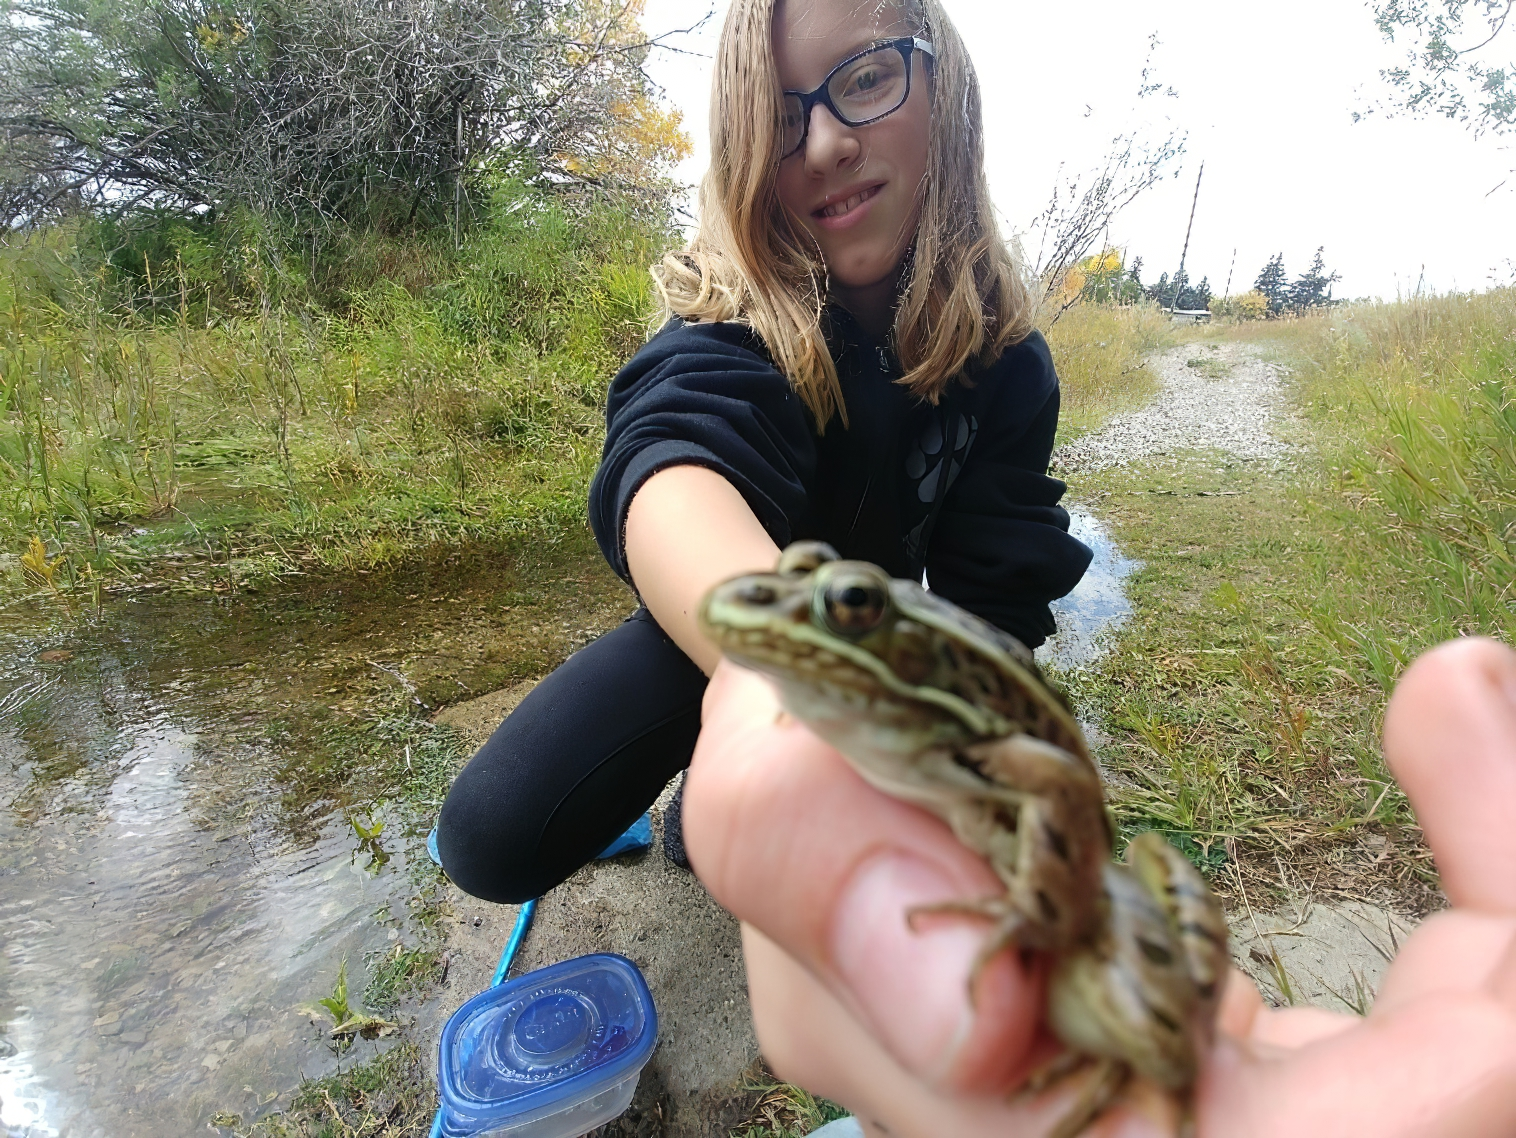 Grade 6 student Hazel is learning about environmental stewardship and the value of being an engaged citizen in the Magrath Nature Trail Project. Photo: Don Peel.